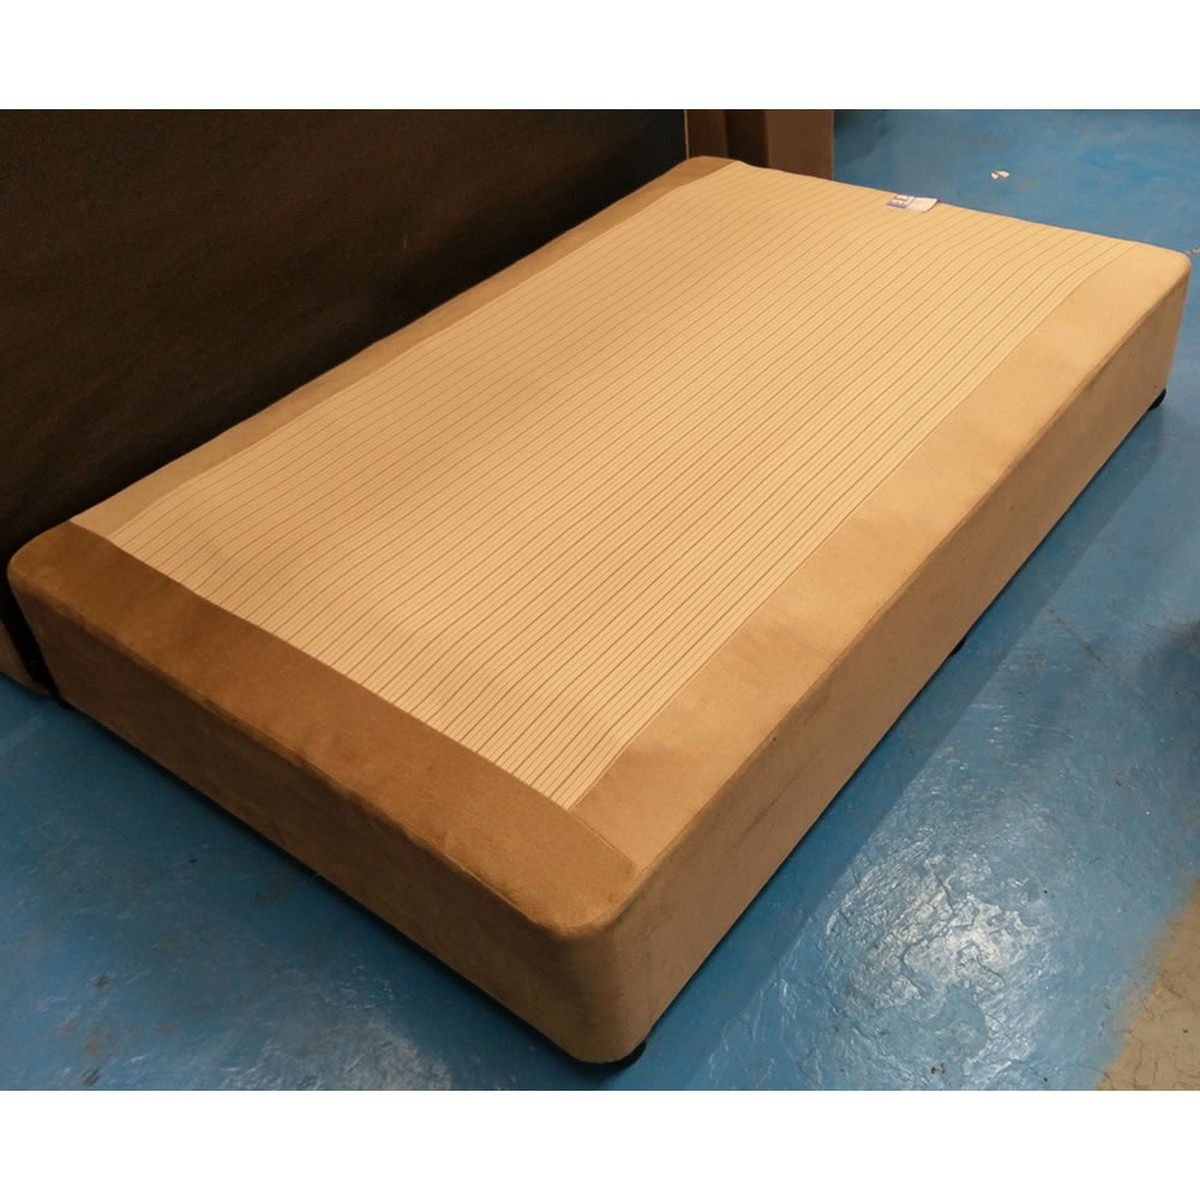 Secondhand Hotel Furniture Beds Ex Hotel Hypnos Beds